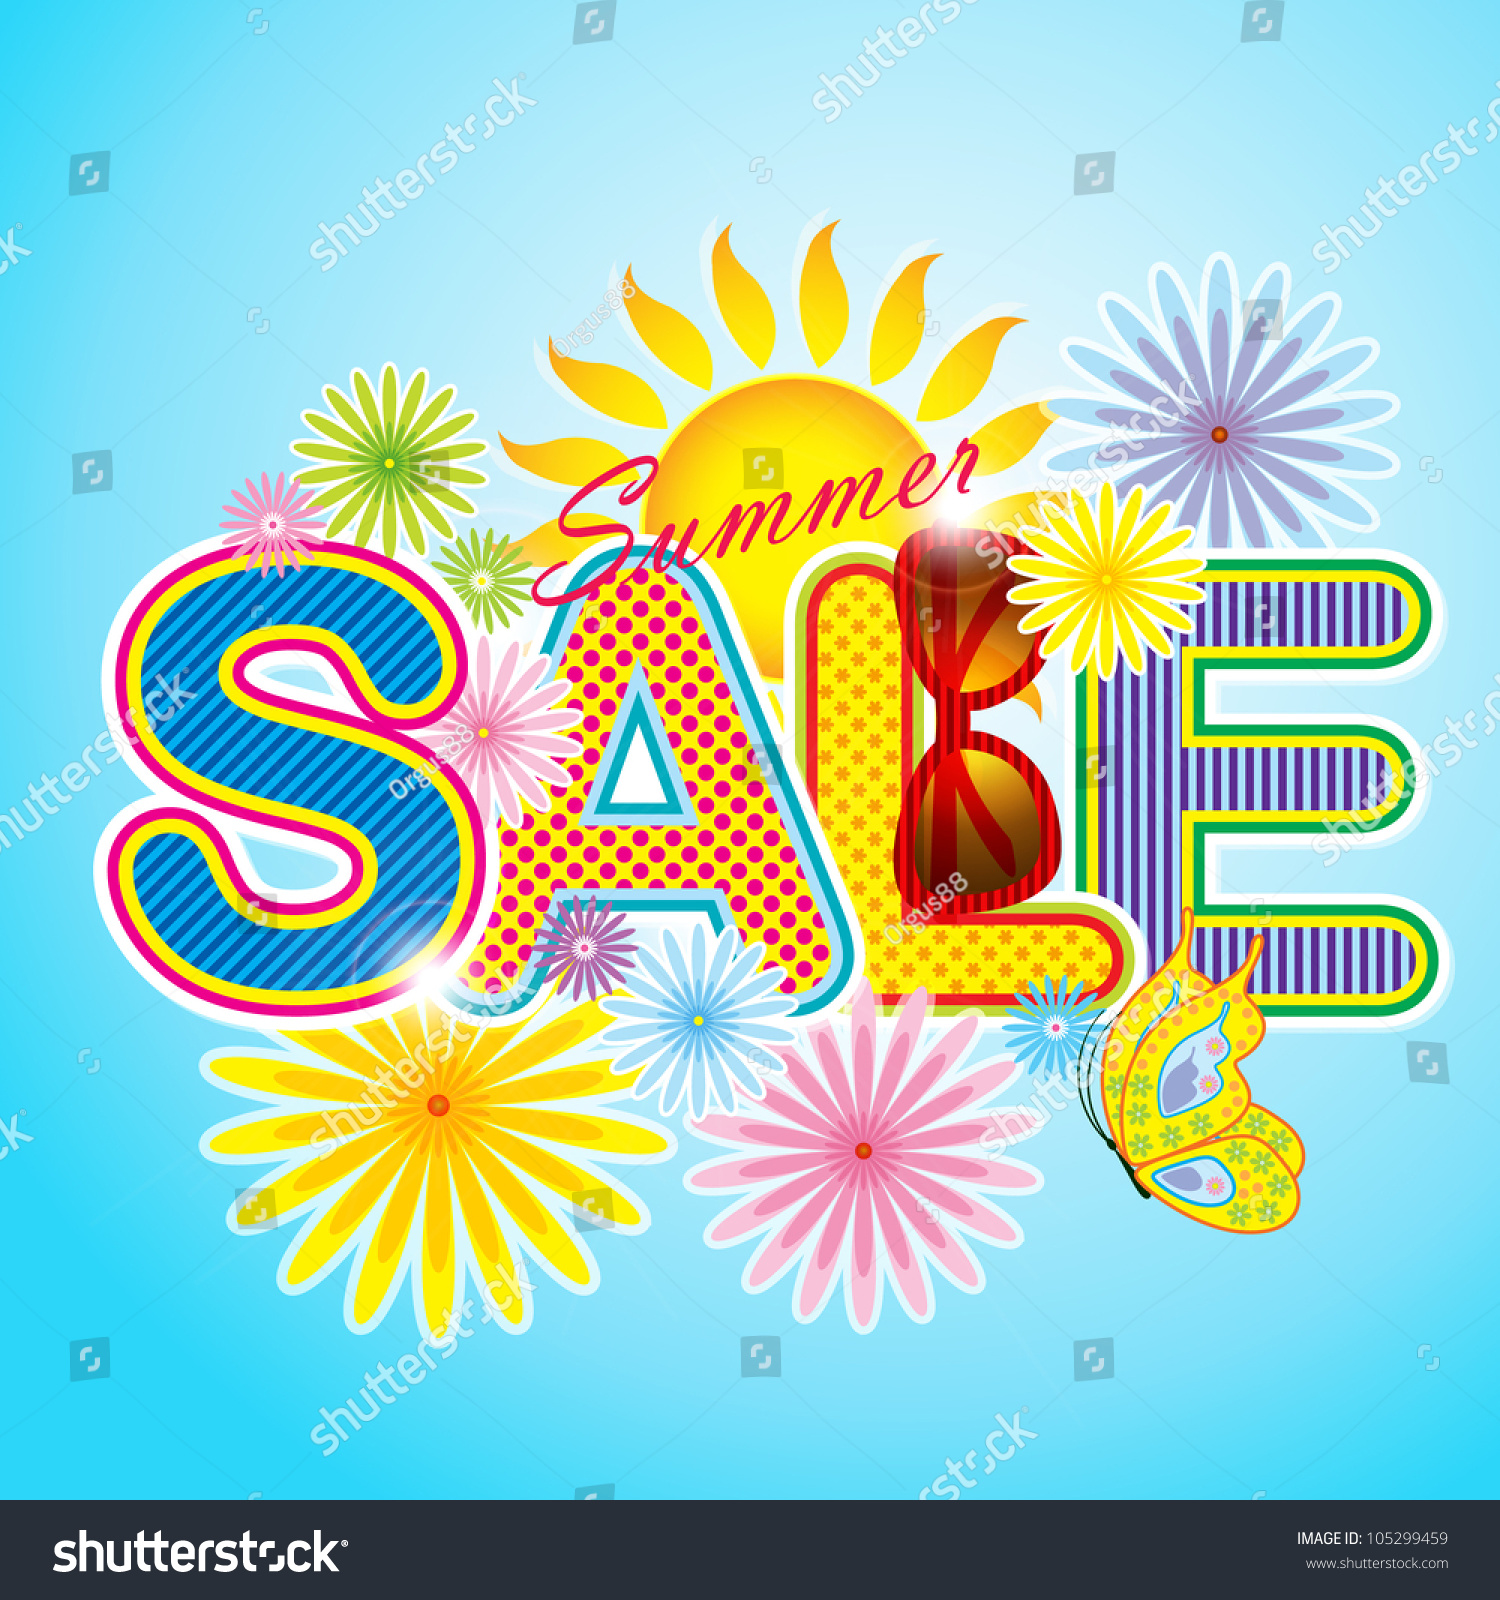 summer sale icon summer sale template stock vector